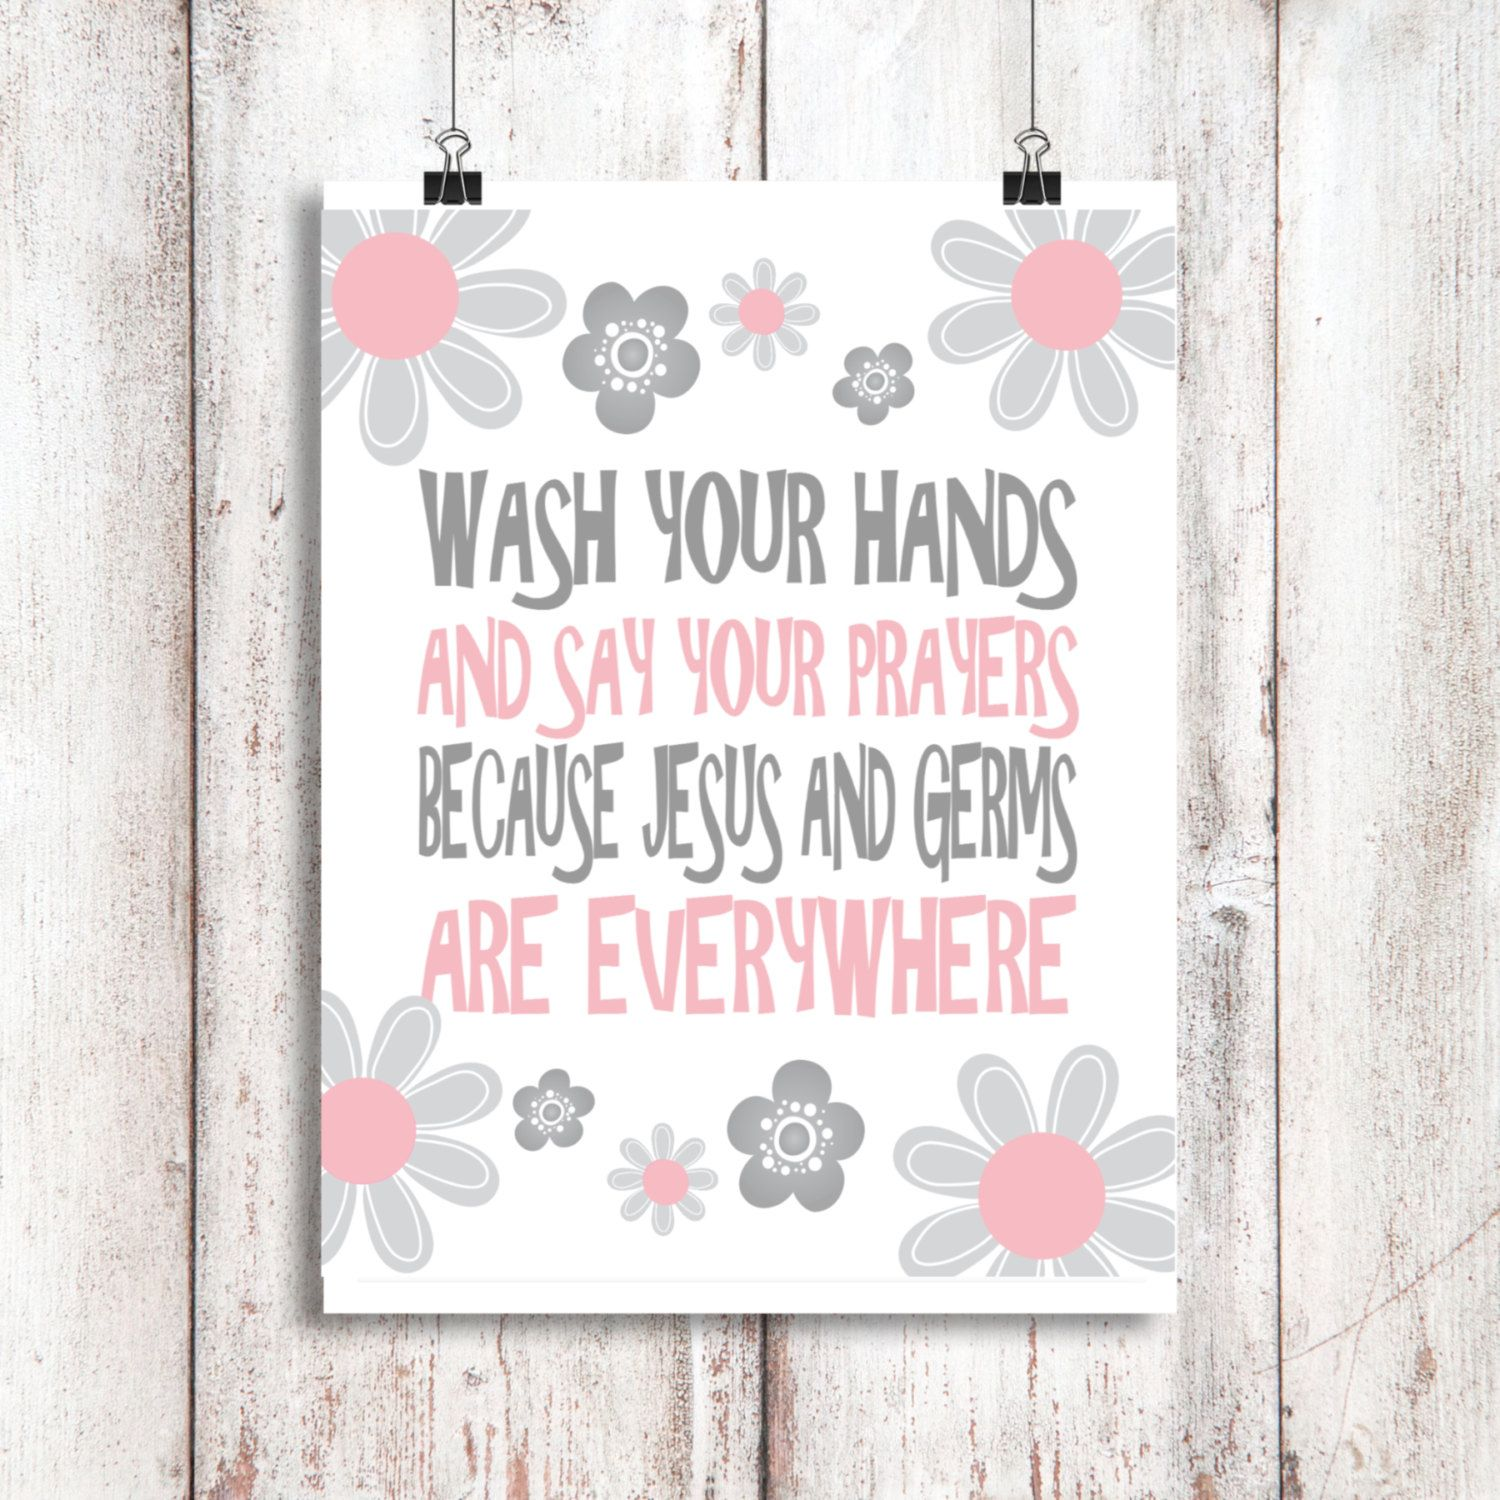 Christian bathroom decor - Wash Your Hands And Say Your Prayers Bathroom Art Bathroom Decor Pink Gray Girls